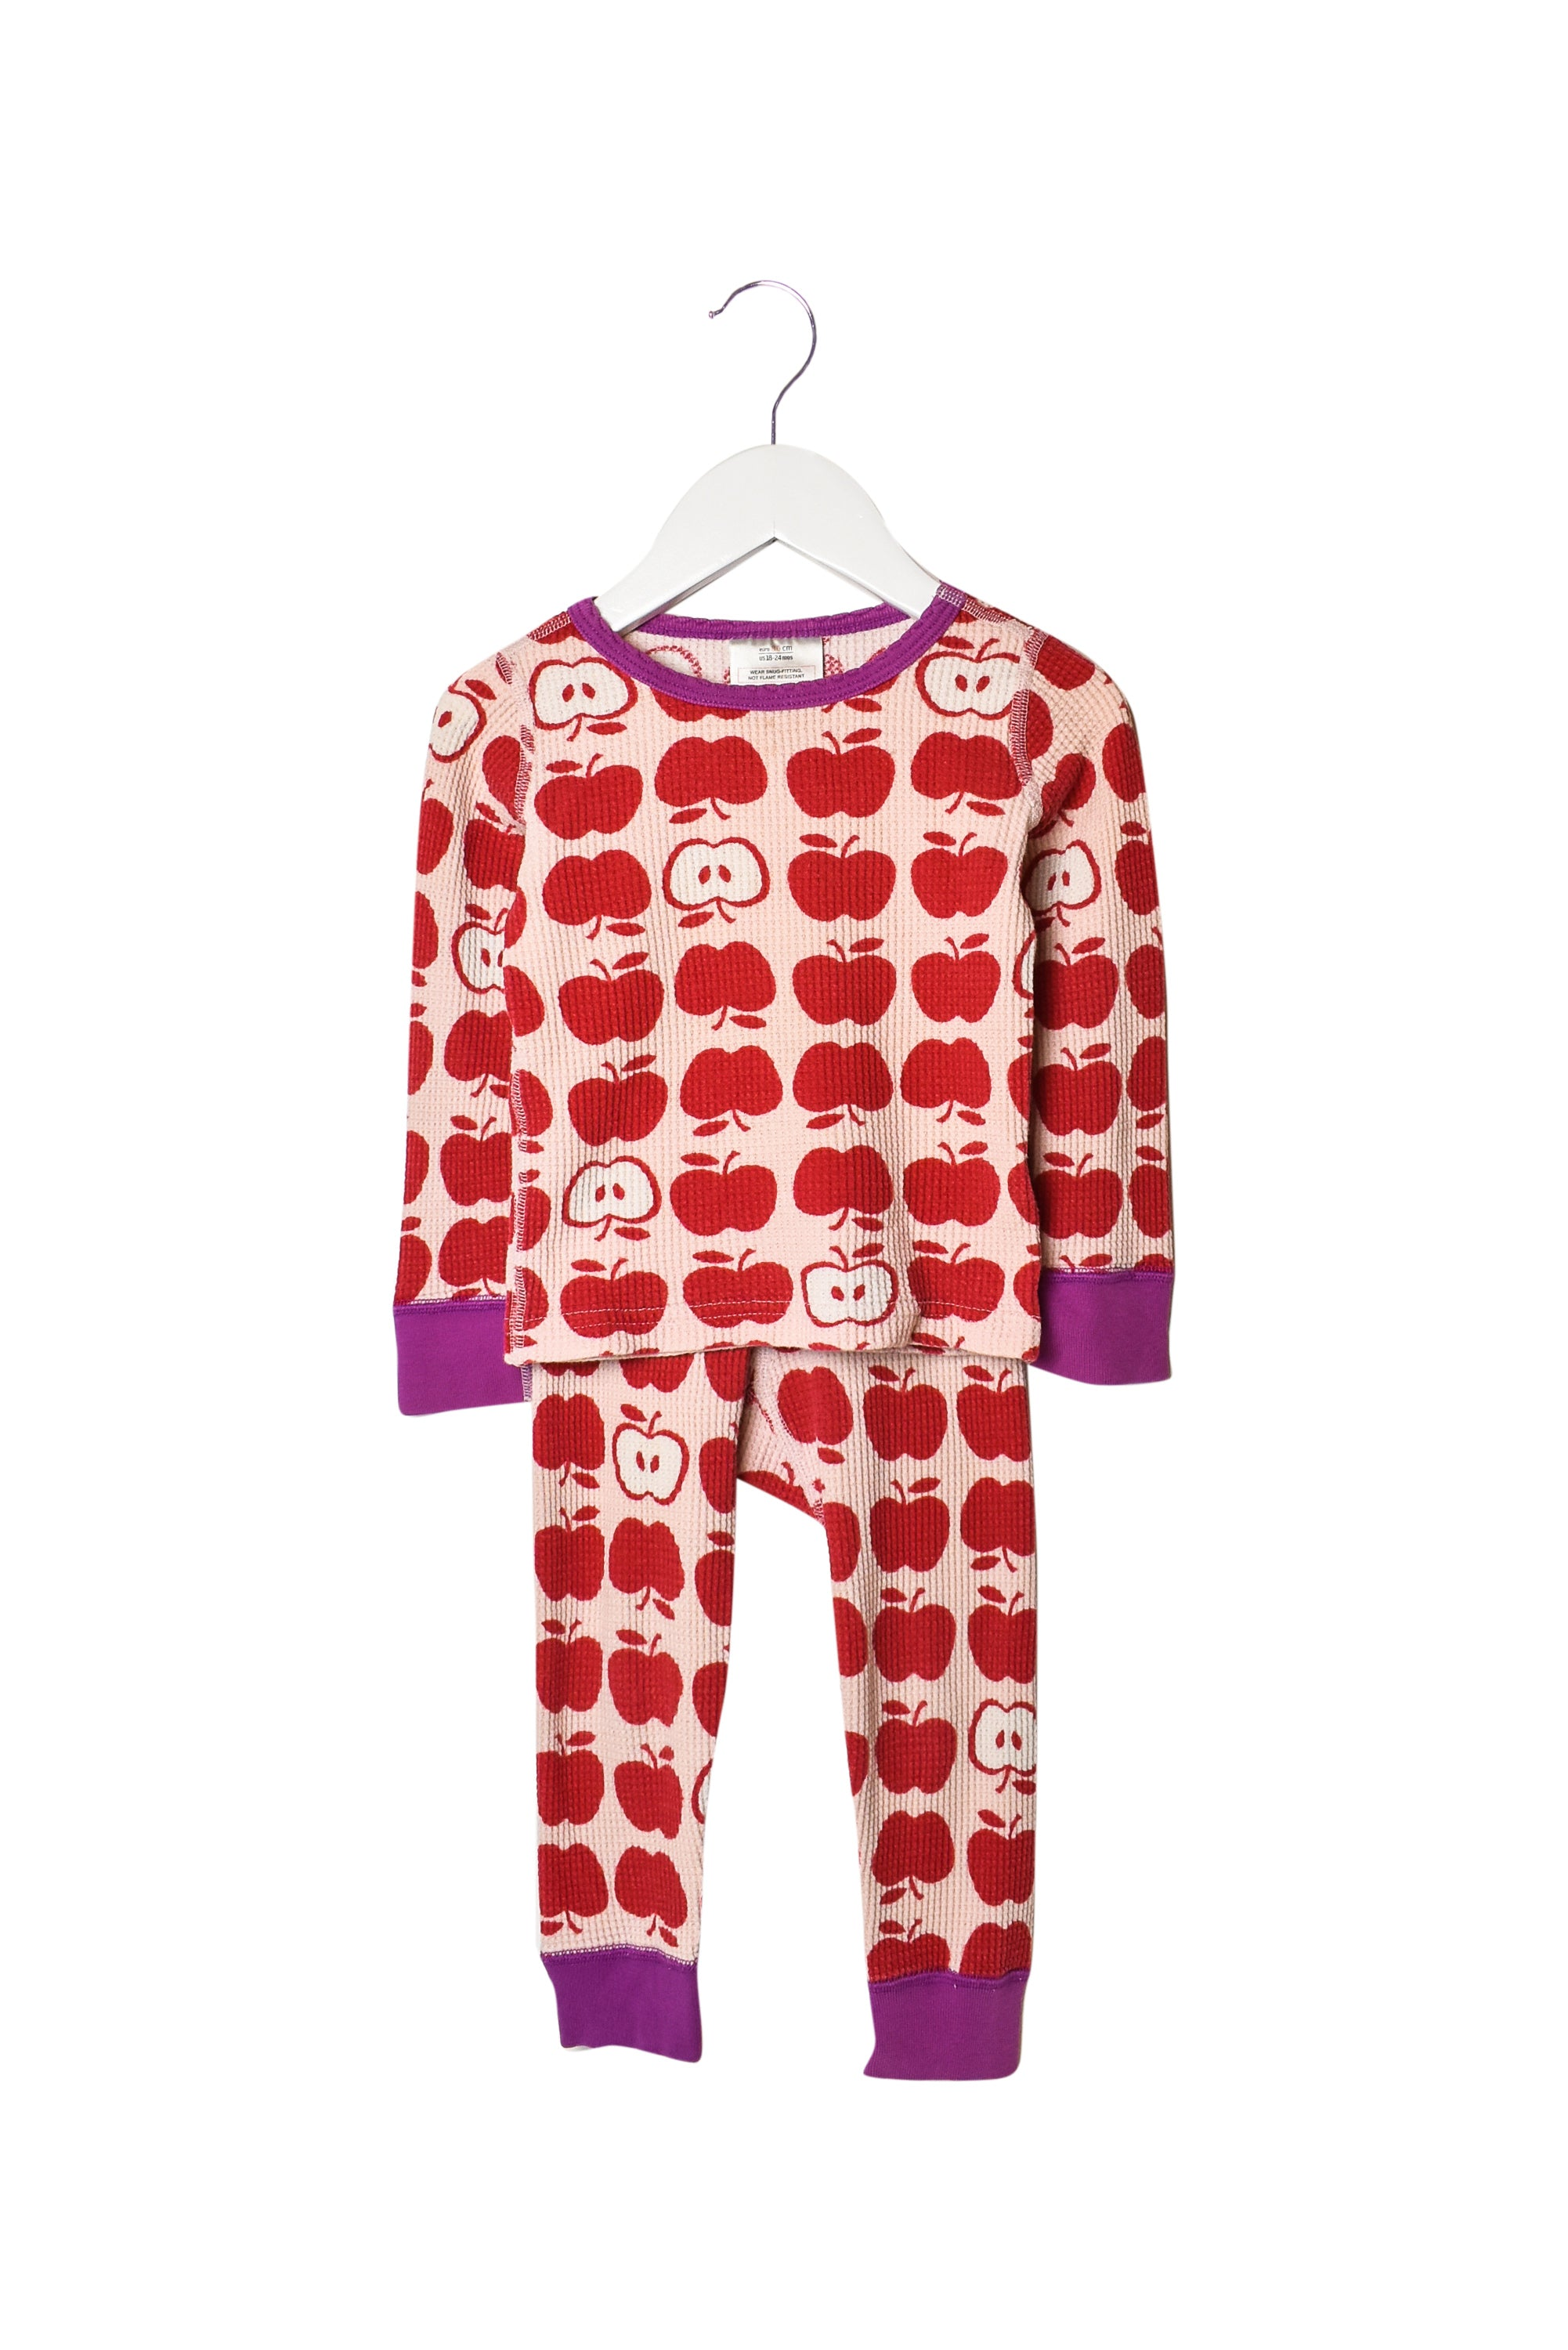 10008234 Hanna Andersson Baby~ Top and Pants 18-24M at Retykle